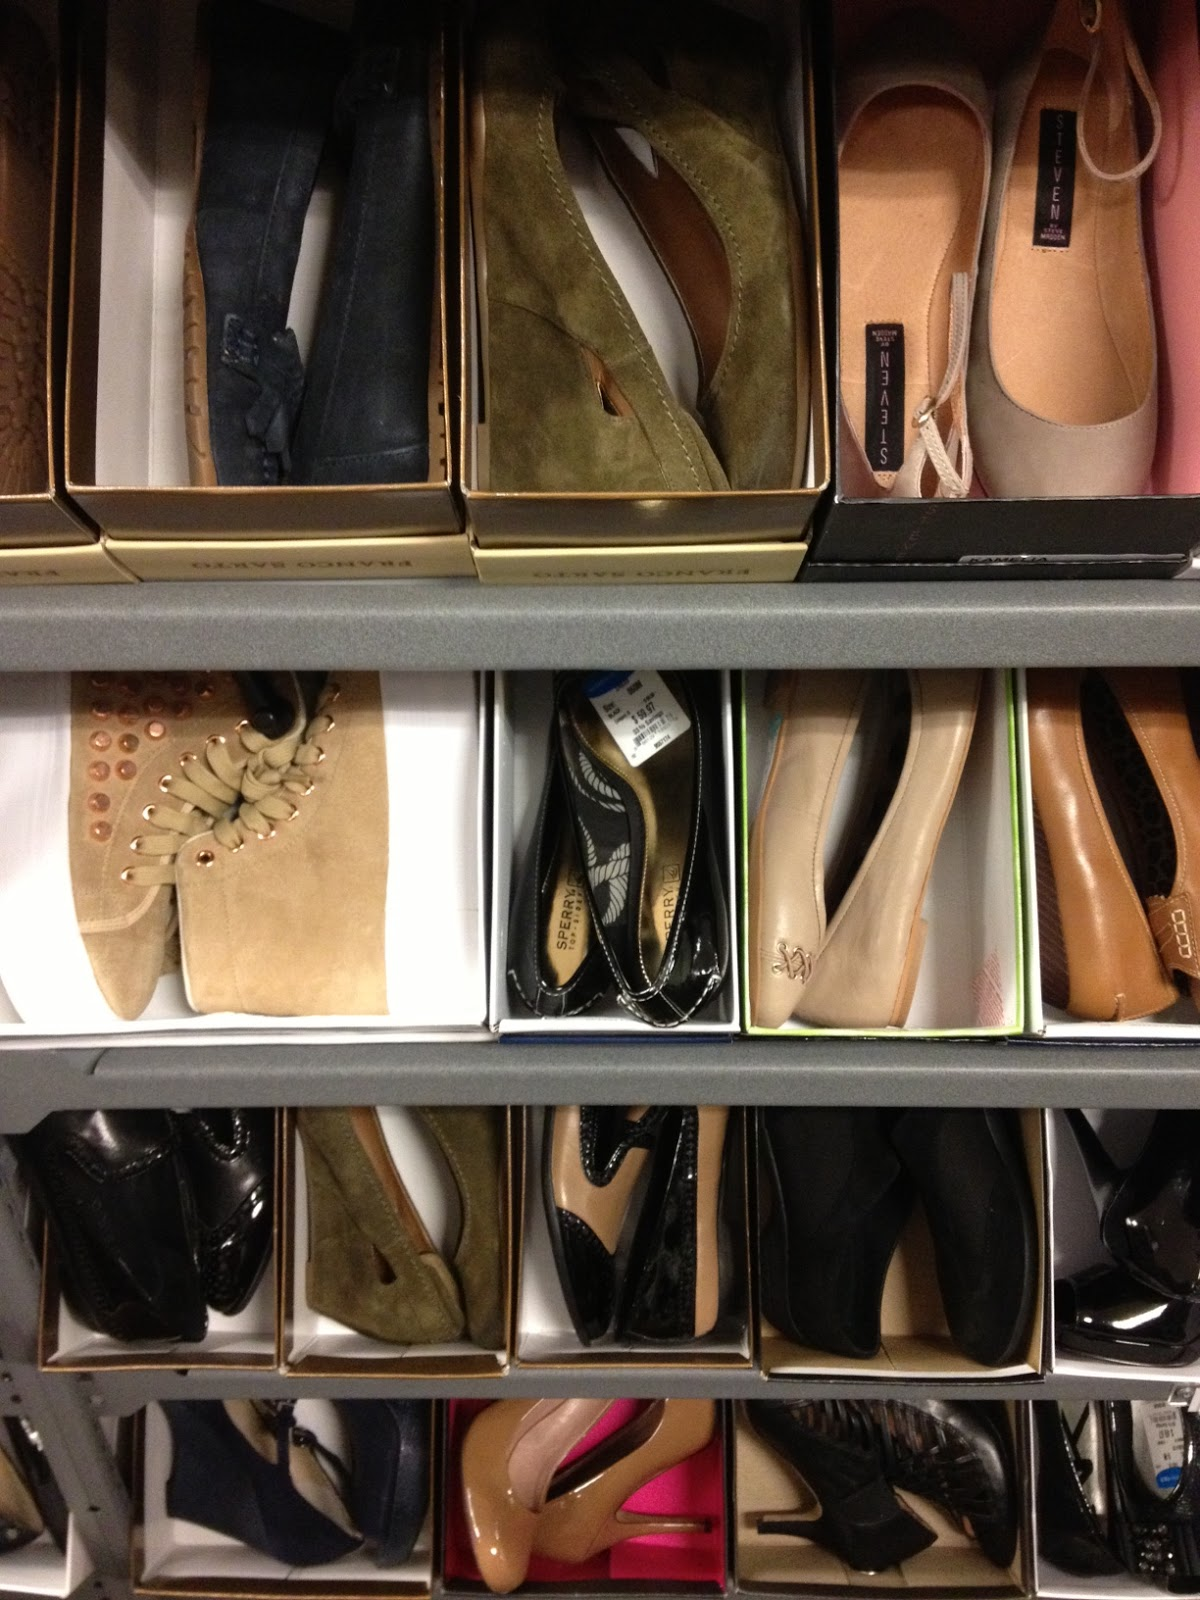 Seattle: Nordstrom Rack at Northgate Opens Tomorrow, Thurs 118!